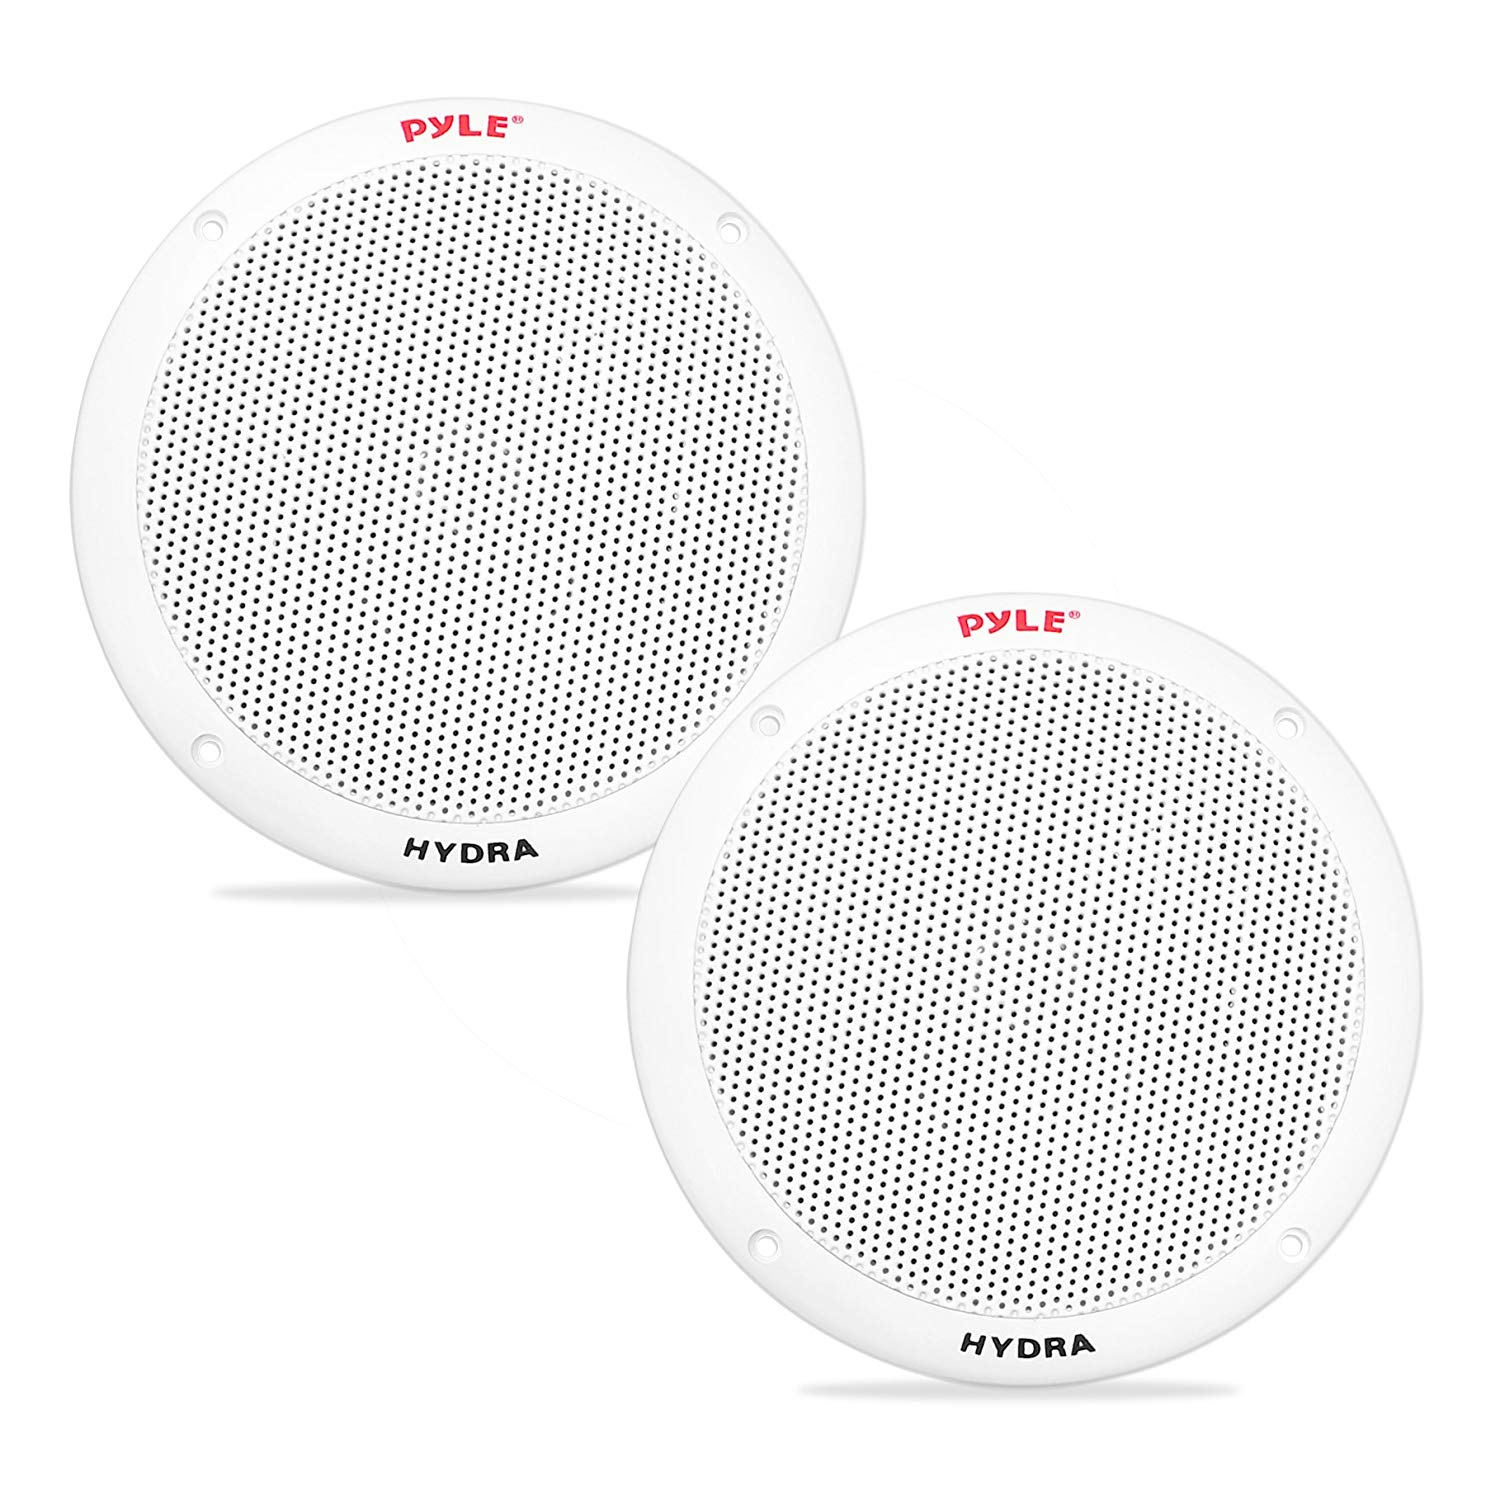 Pyle PLM R605W Dual Marine Speakers